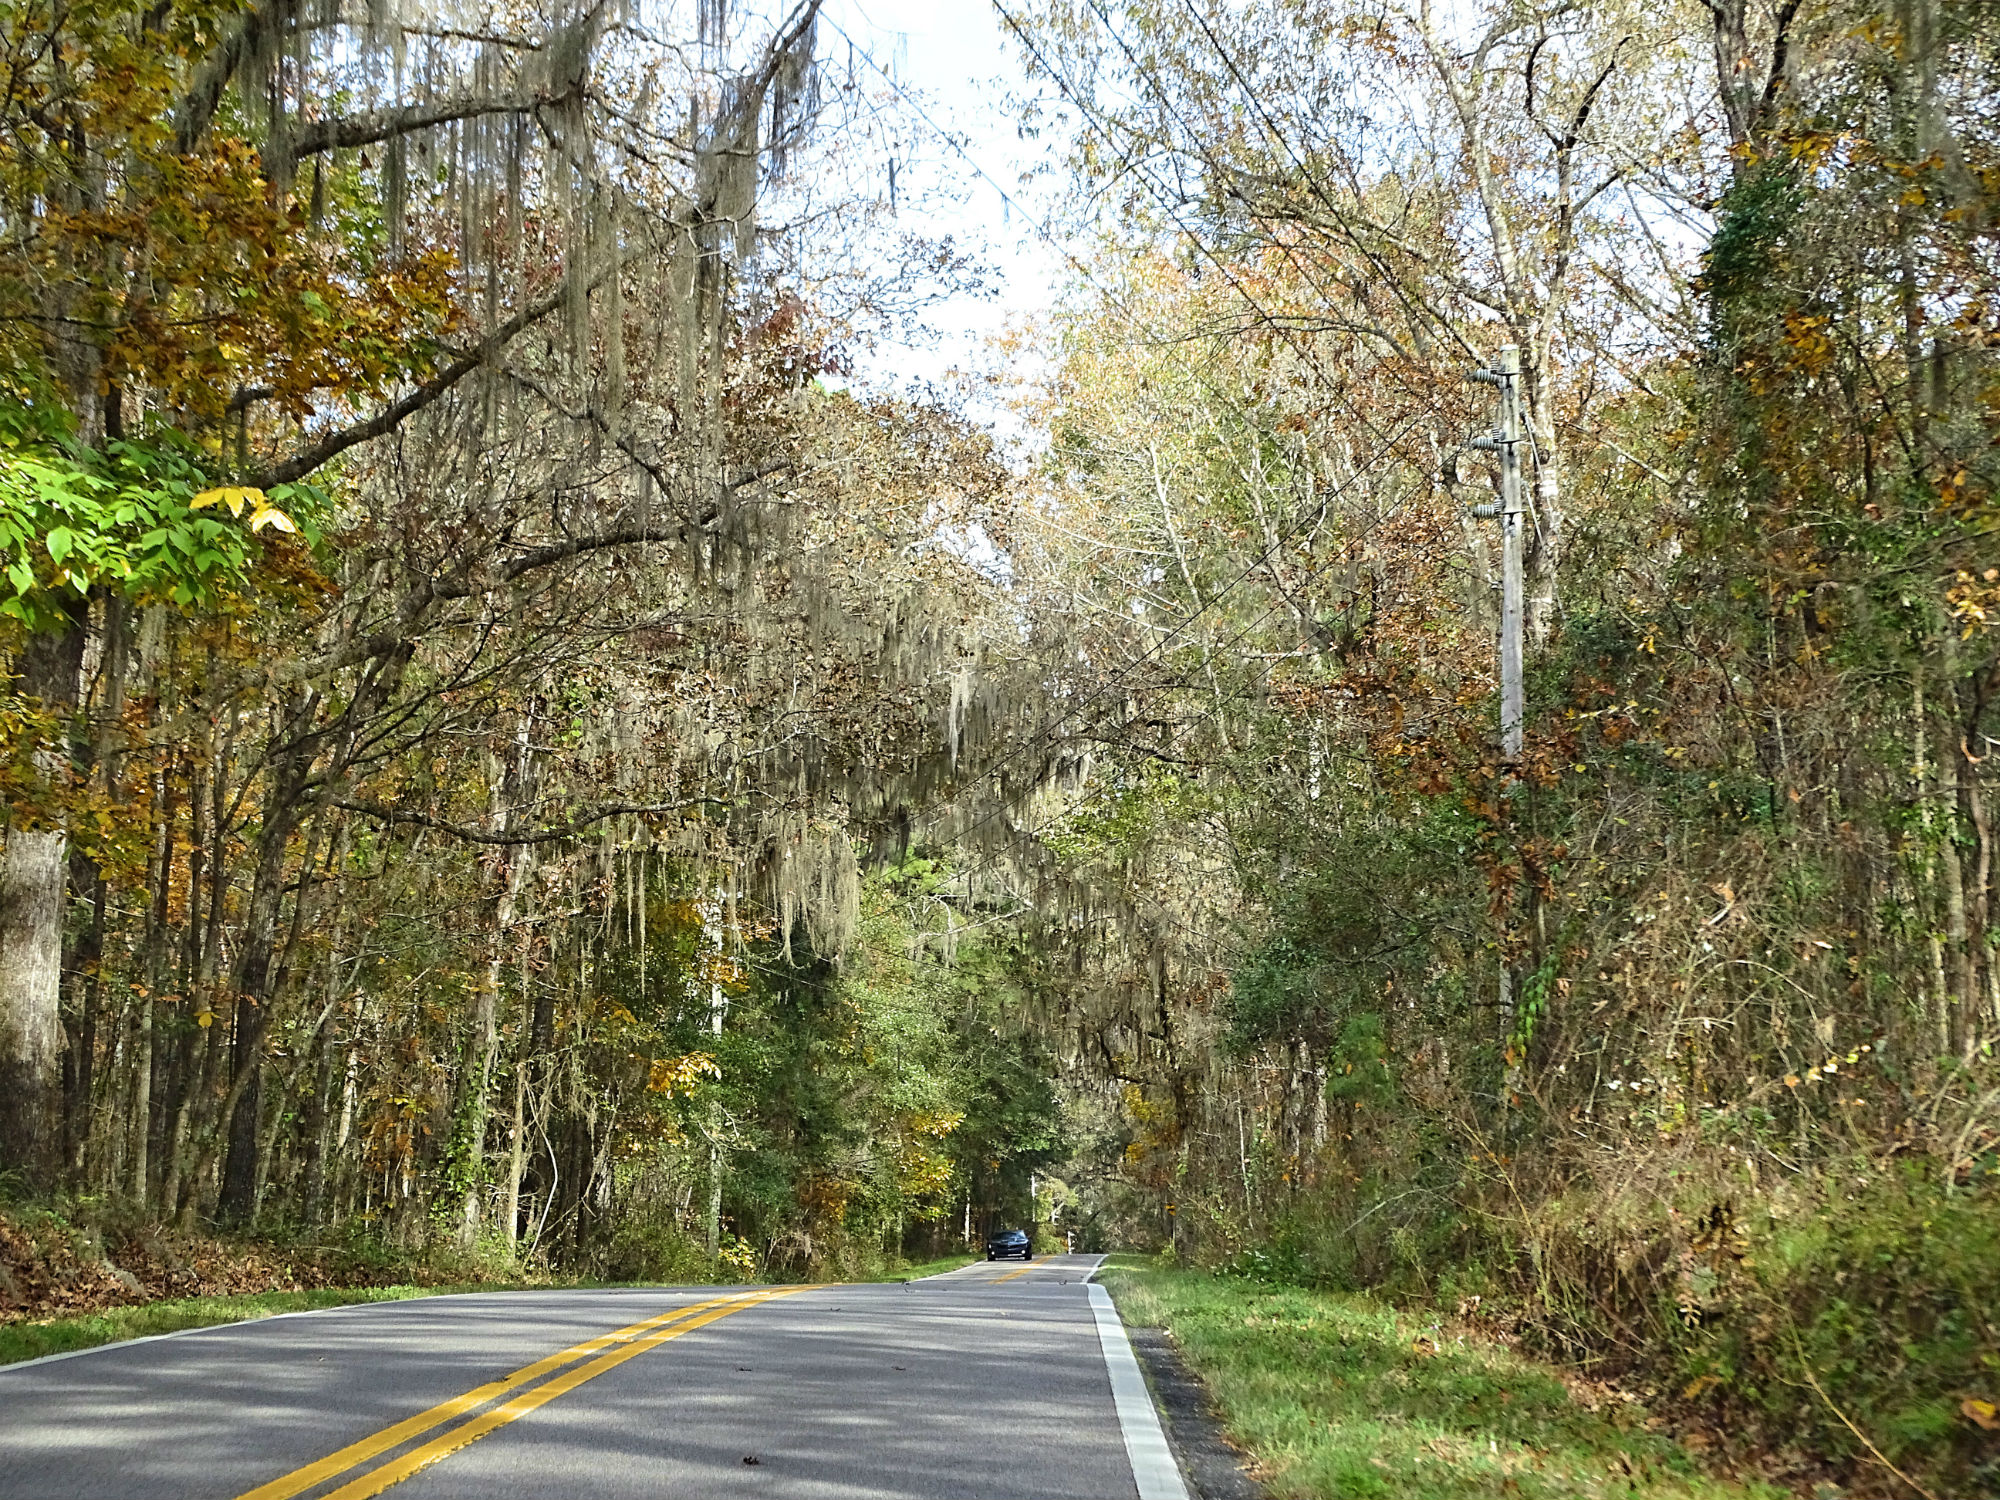 Canopy Road, Tallahassee